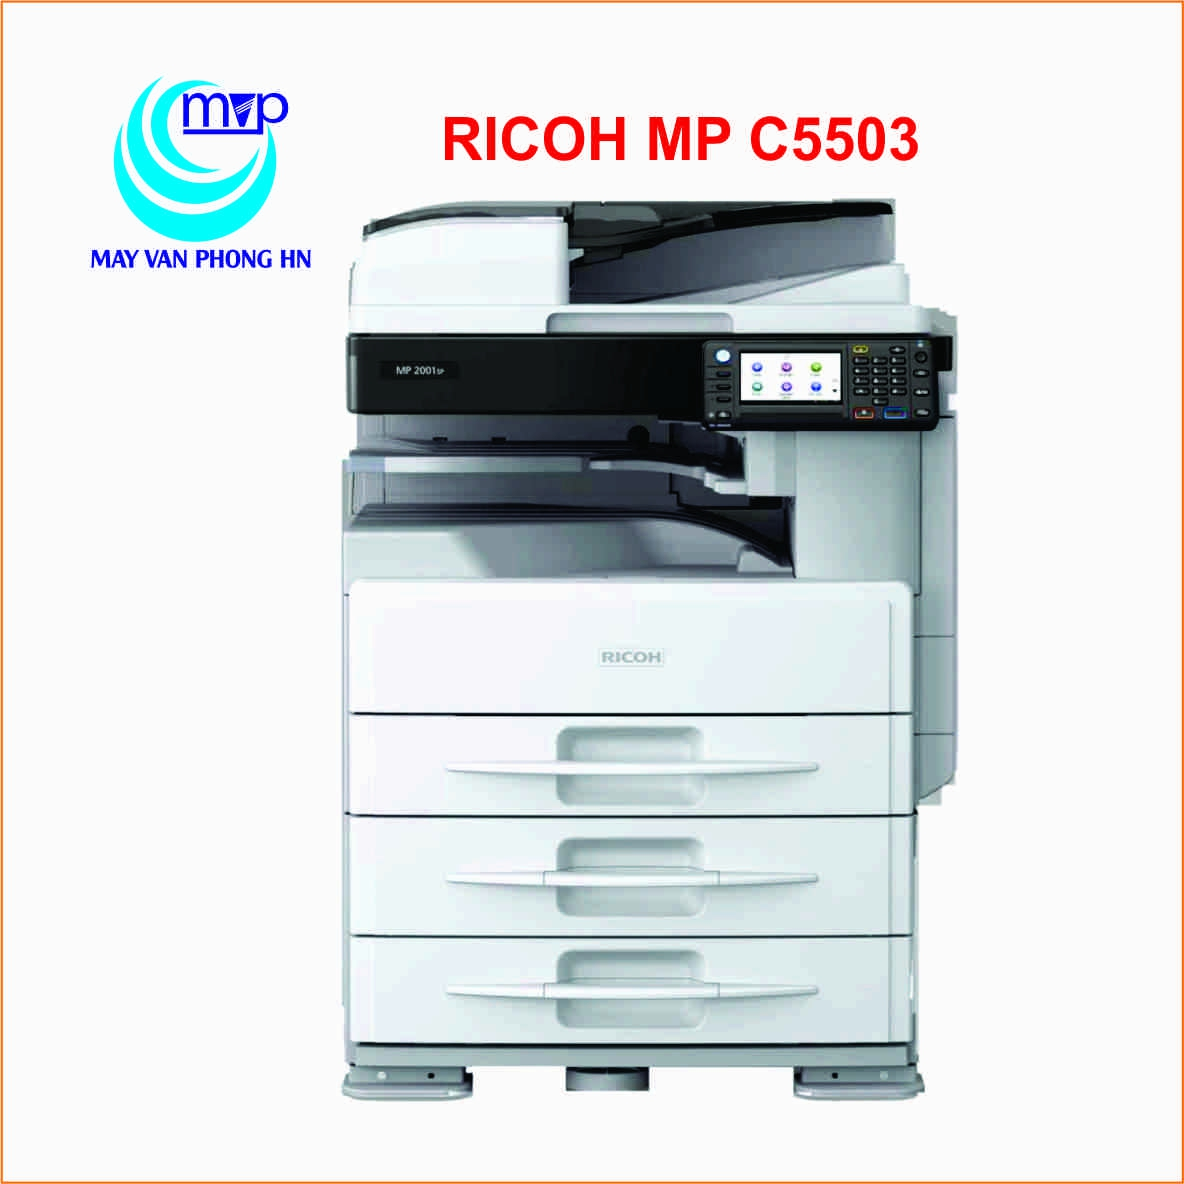 RICOH MP C5503